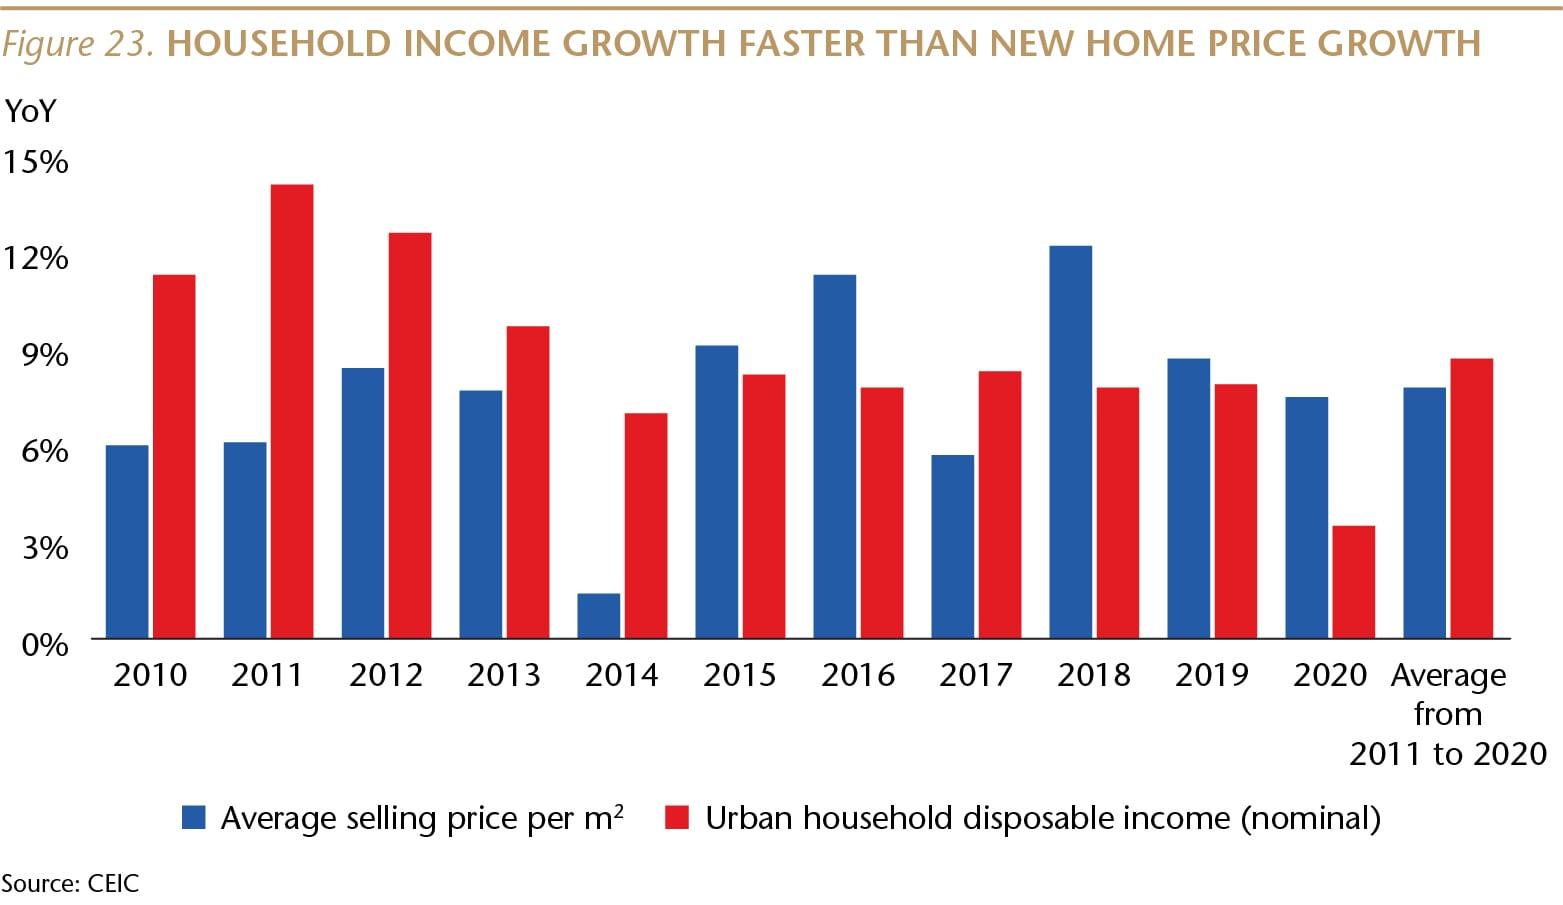 SI073_Figure 23_Household income growth faster_WEB-01-min.jpg